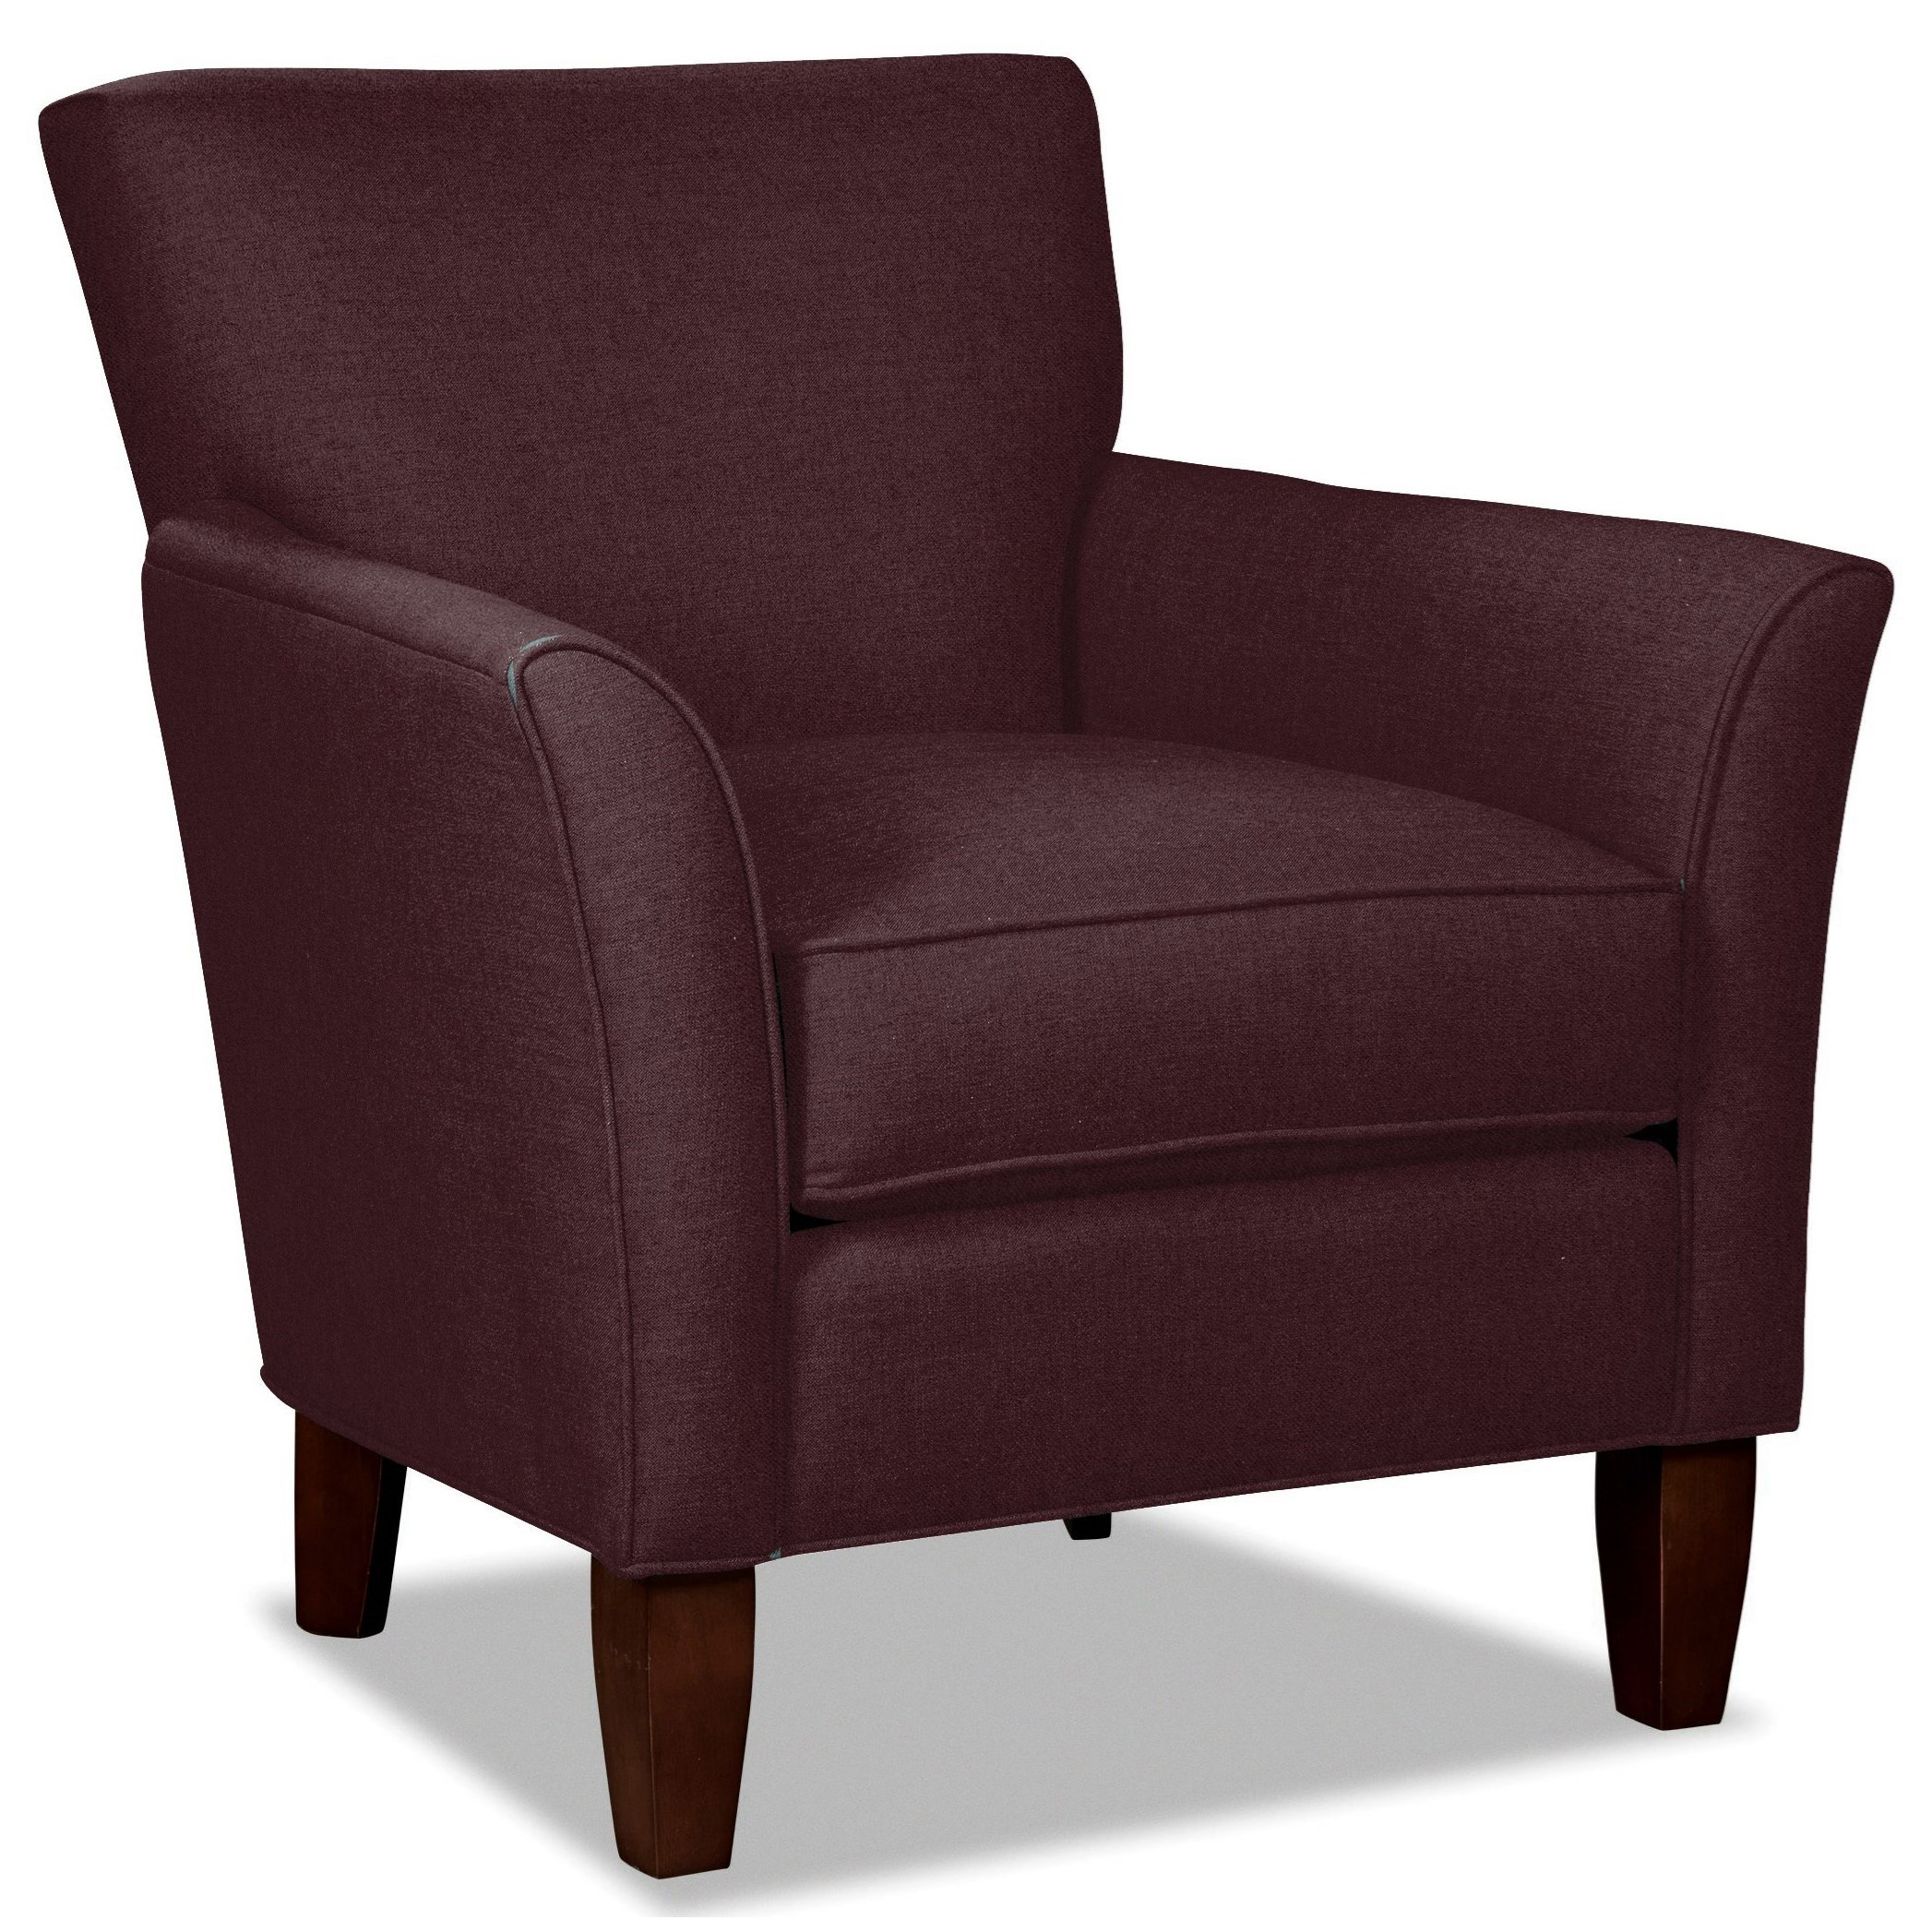 Craftmaster 060110 Accent Chair - Item Number: 060110-CYCLE-28